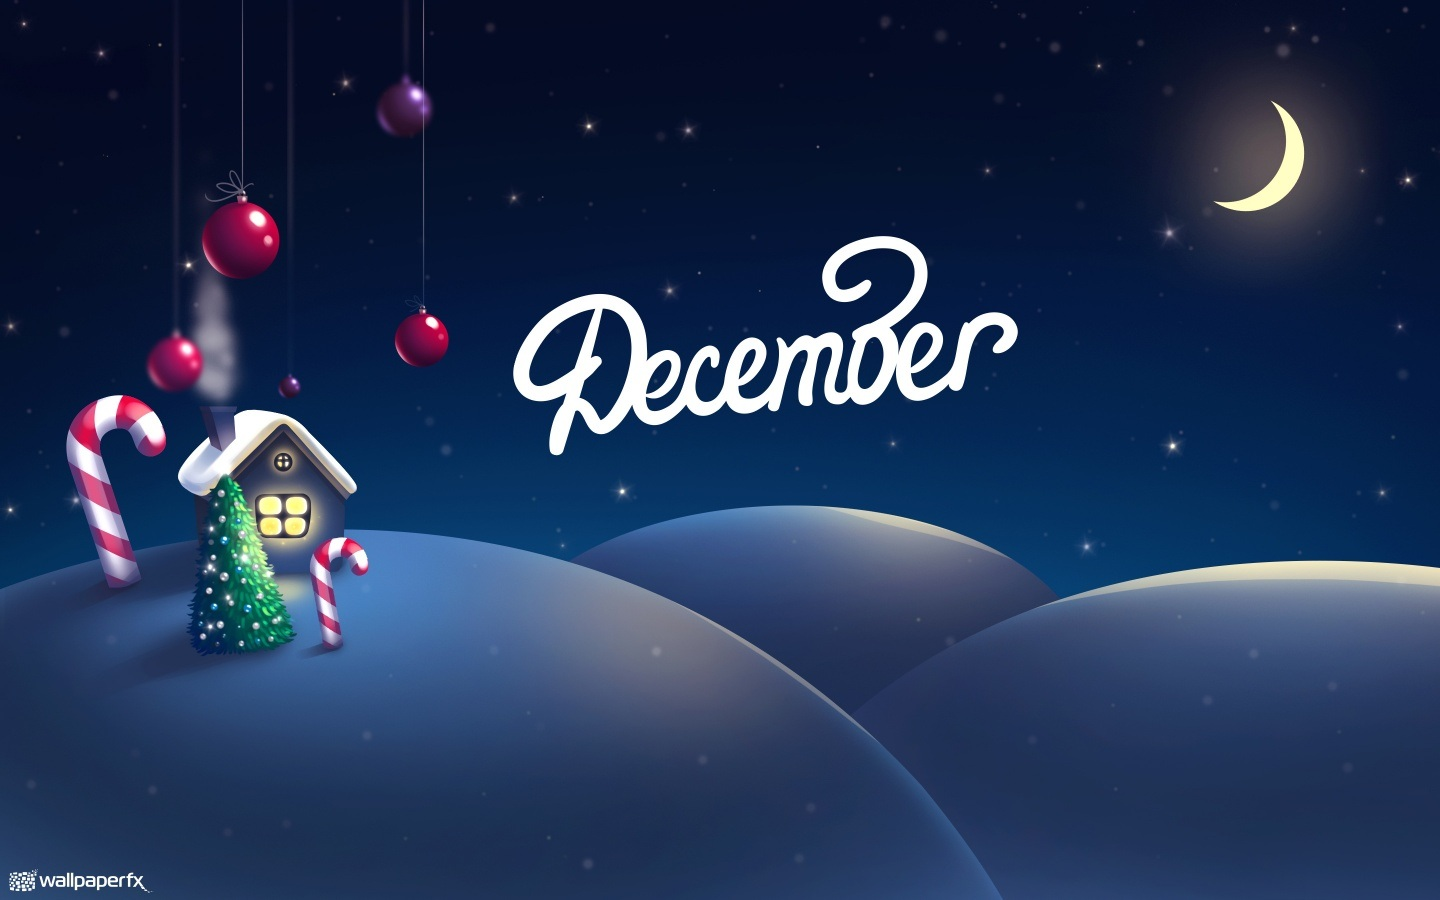 december_the_christmas_month-1440x900